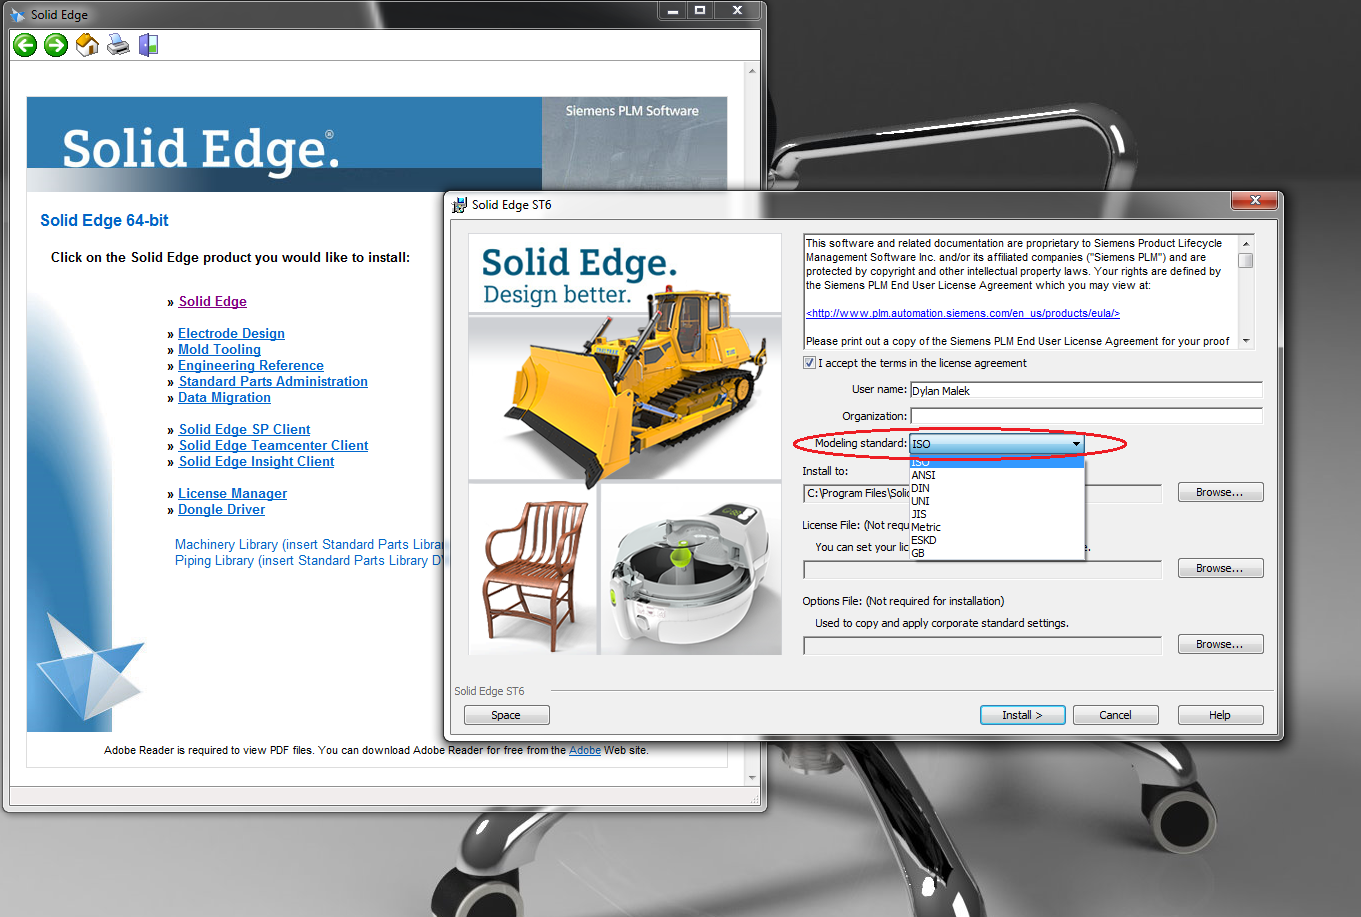 3 Steps to Getting Started with Solid Edge